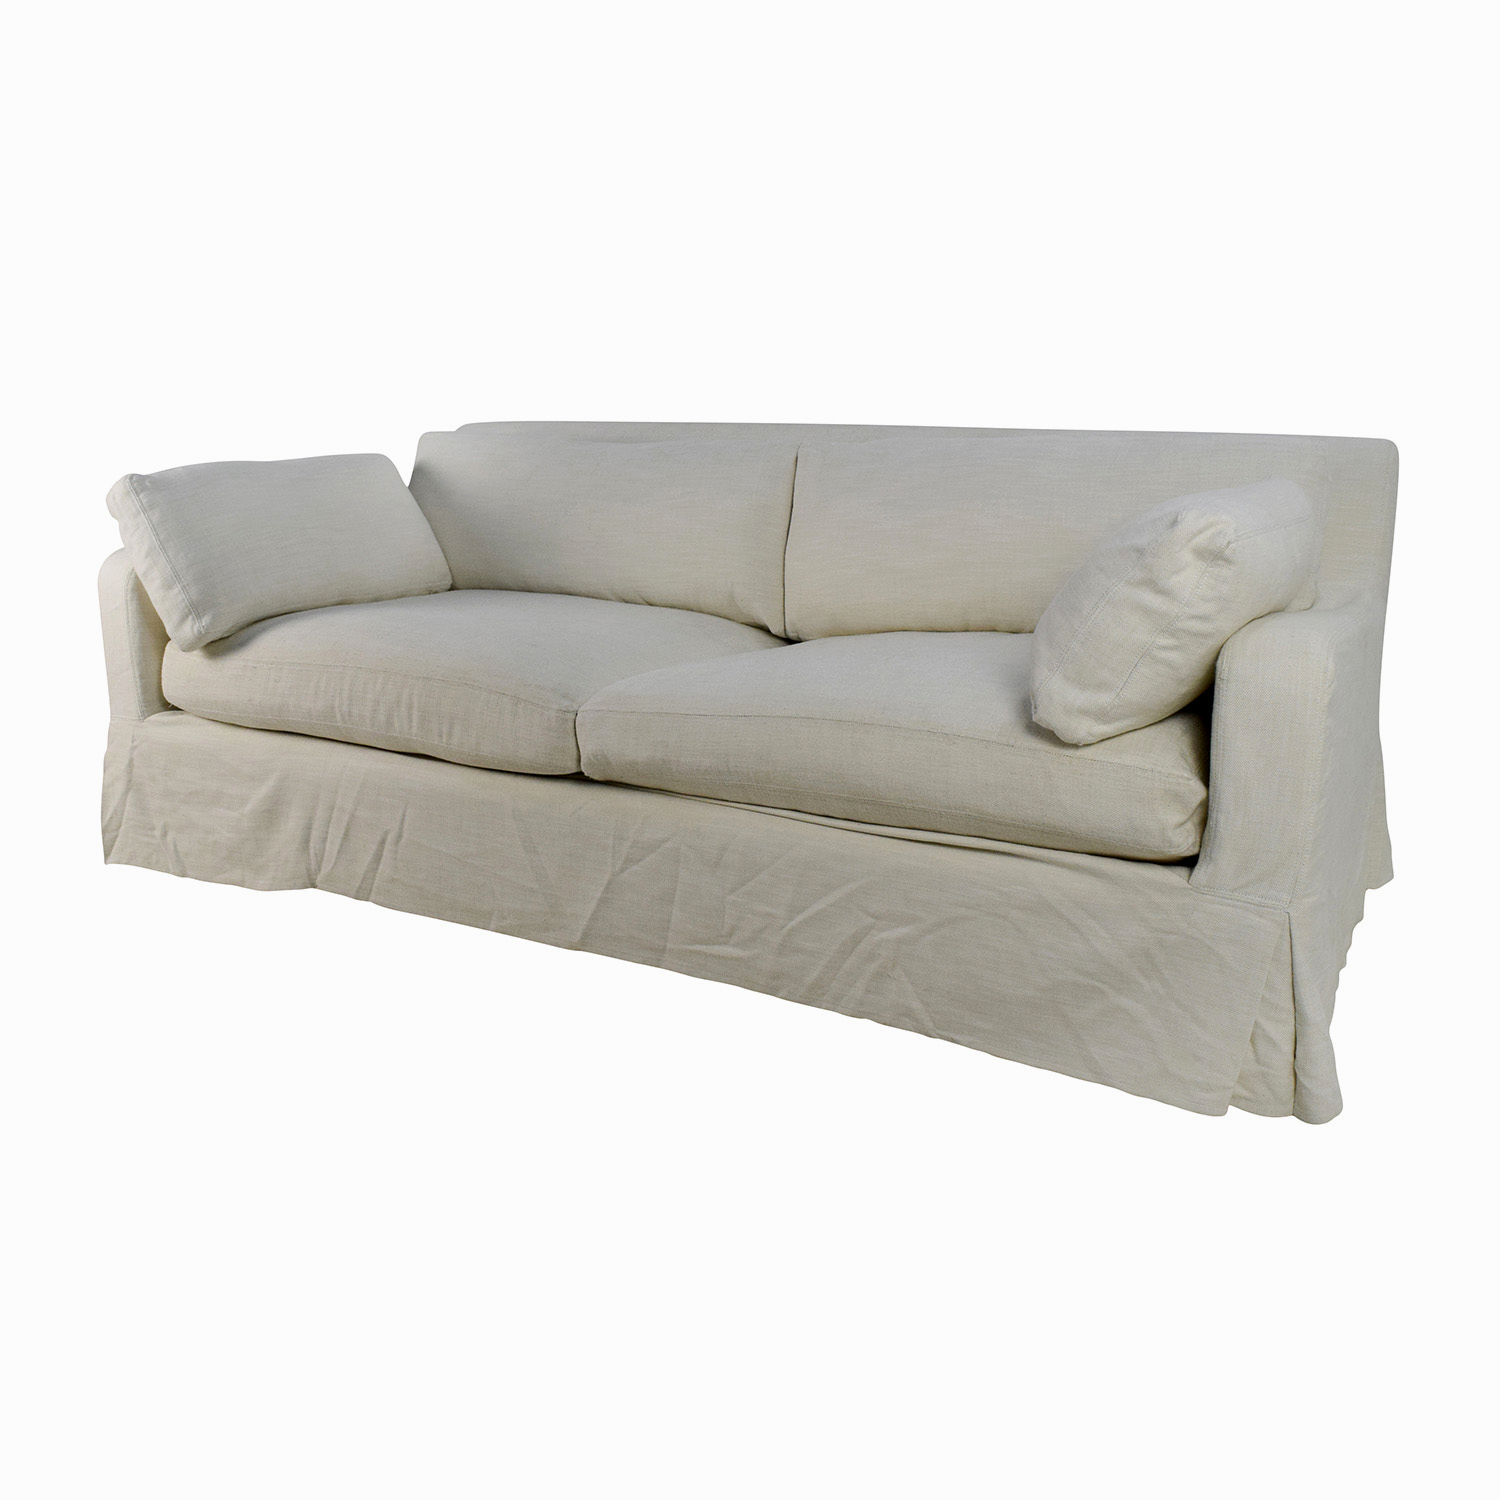 unique leather sofa bed model-Luxury Leather sofa Bed Model